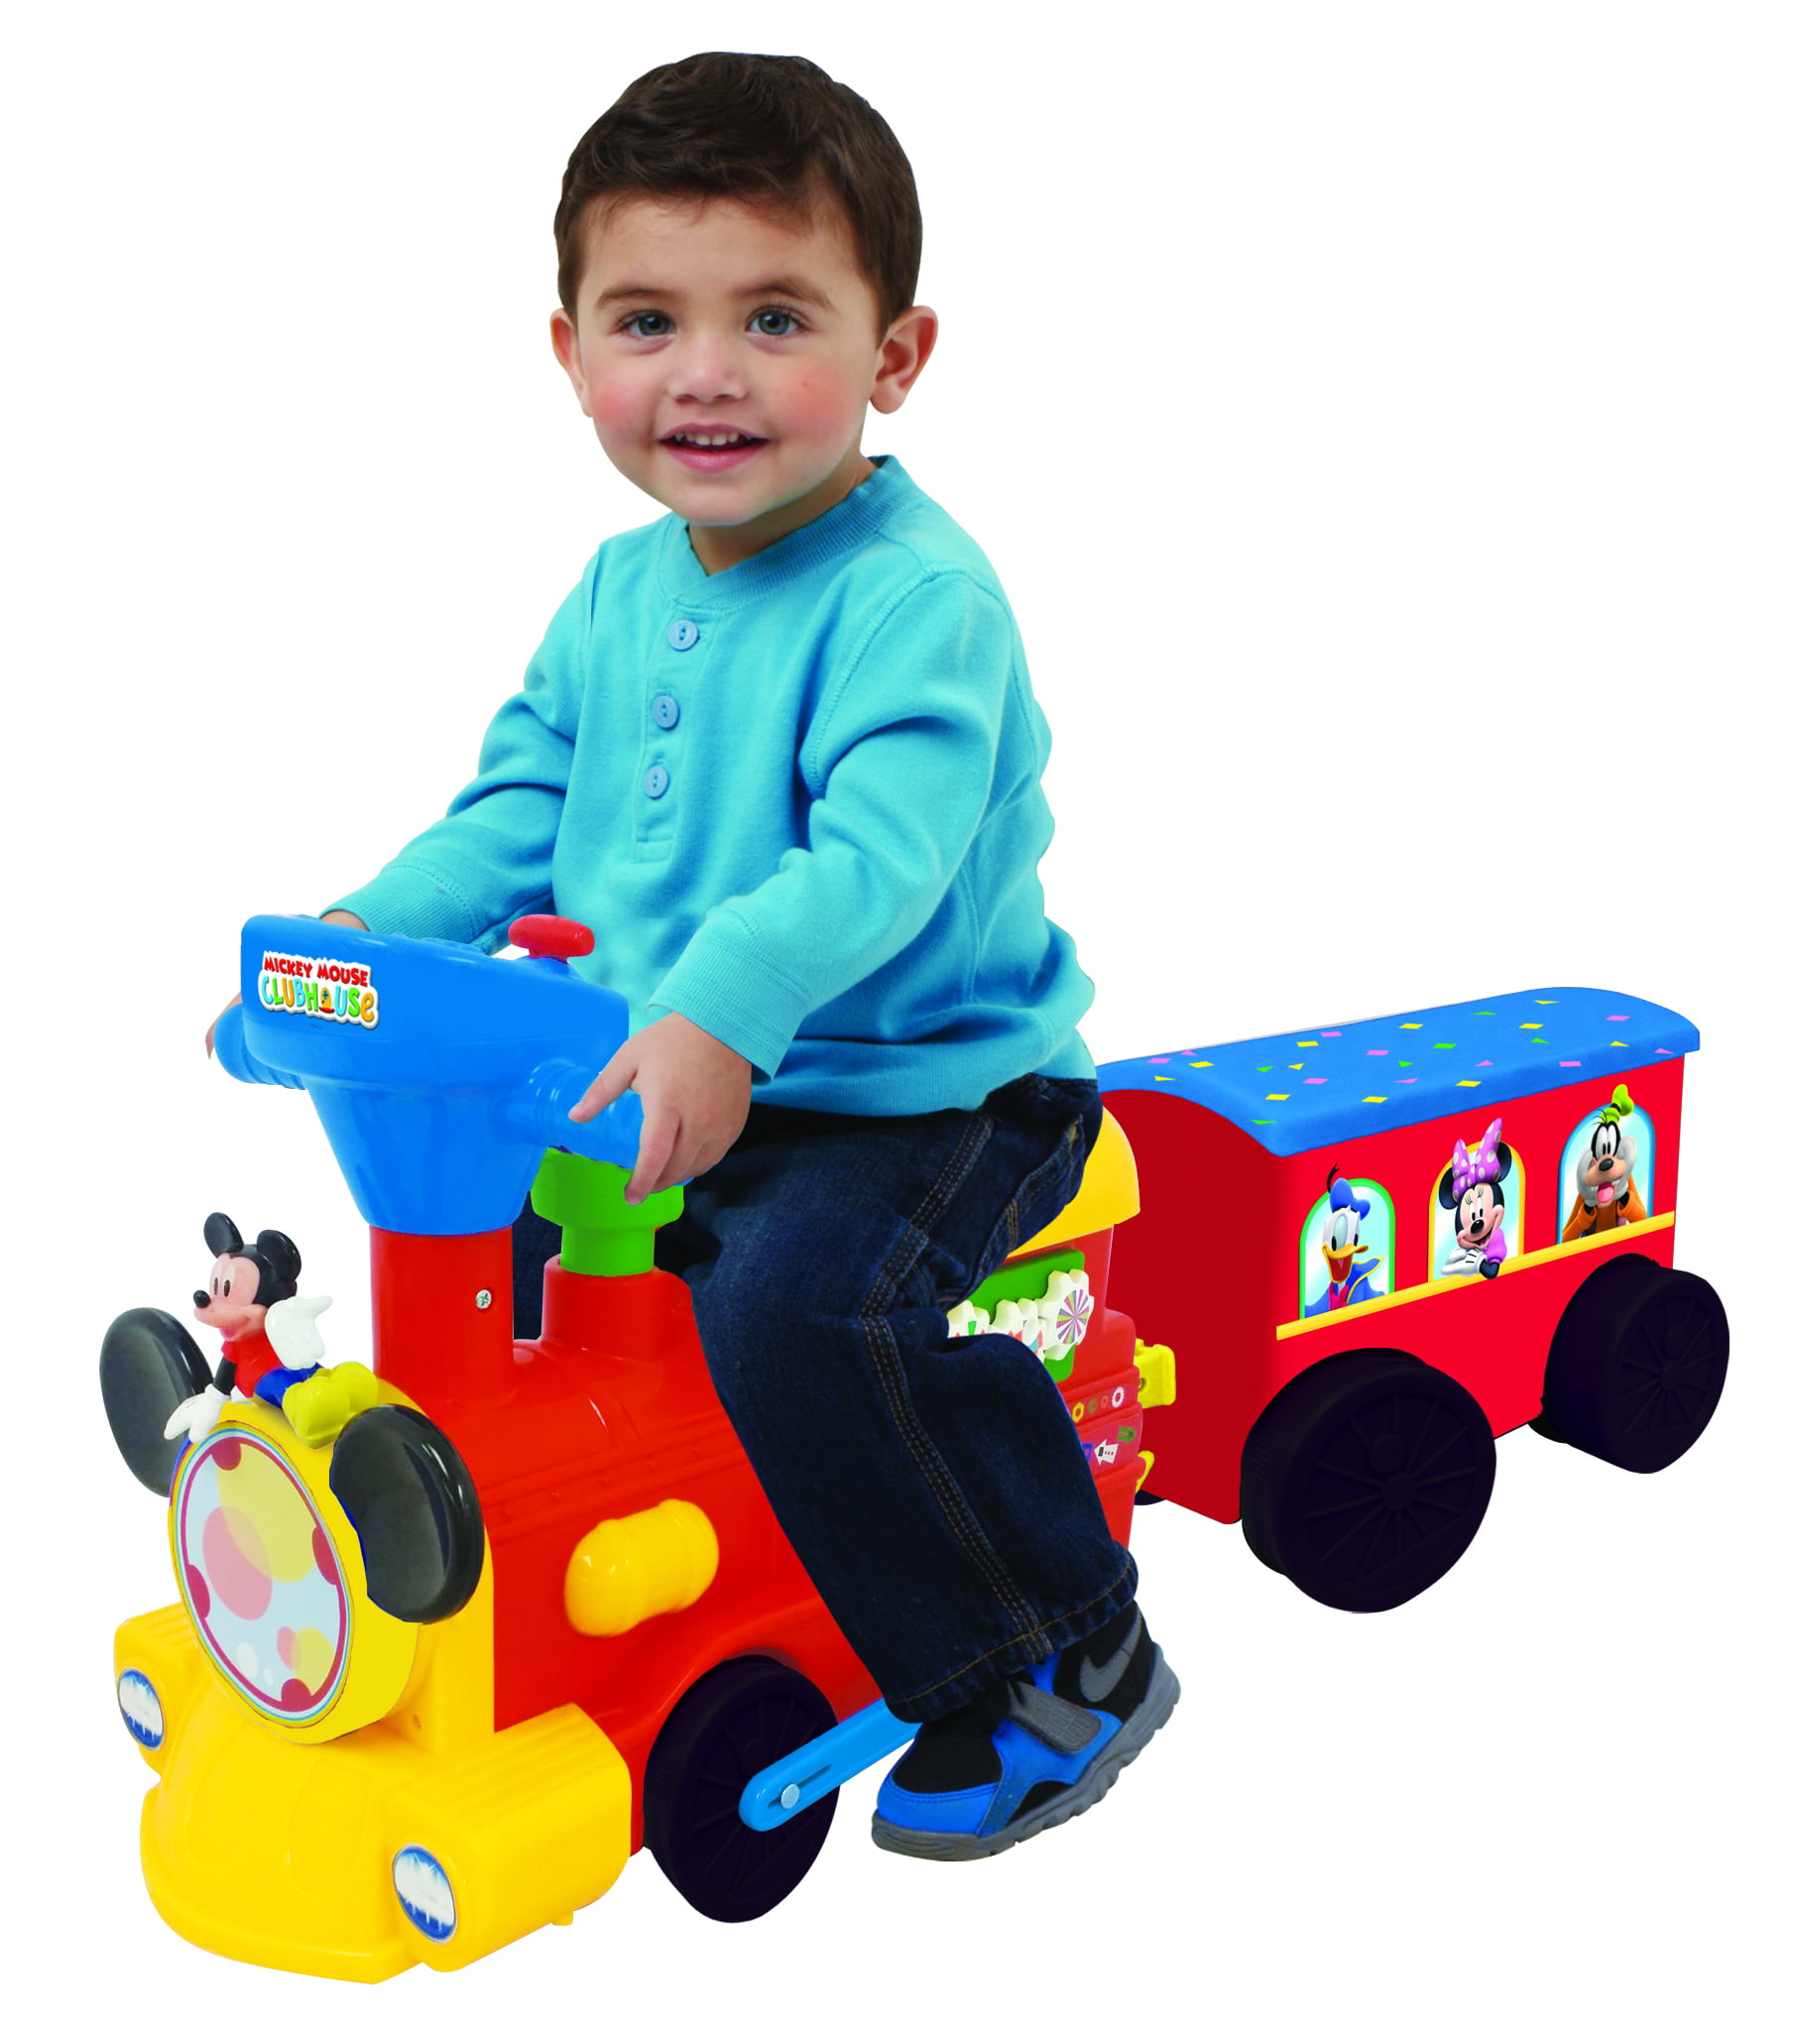 Disney Mickey Mouse 2-in-1 Battery-Powered Train with Trailer by Kiddieland